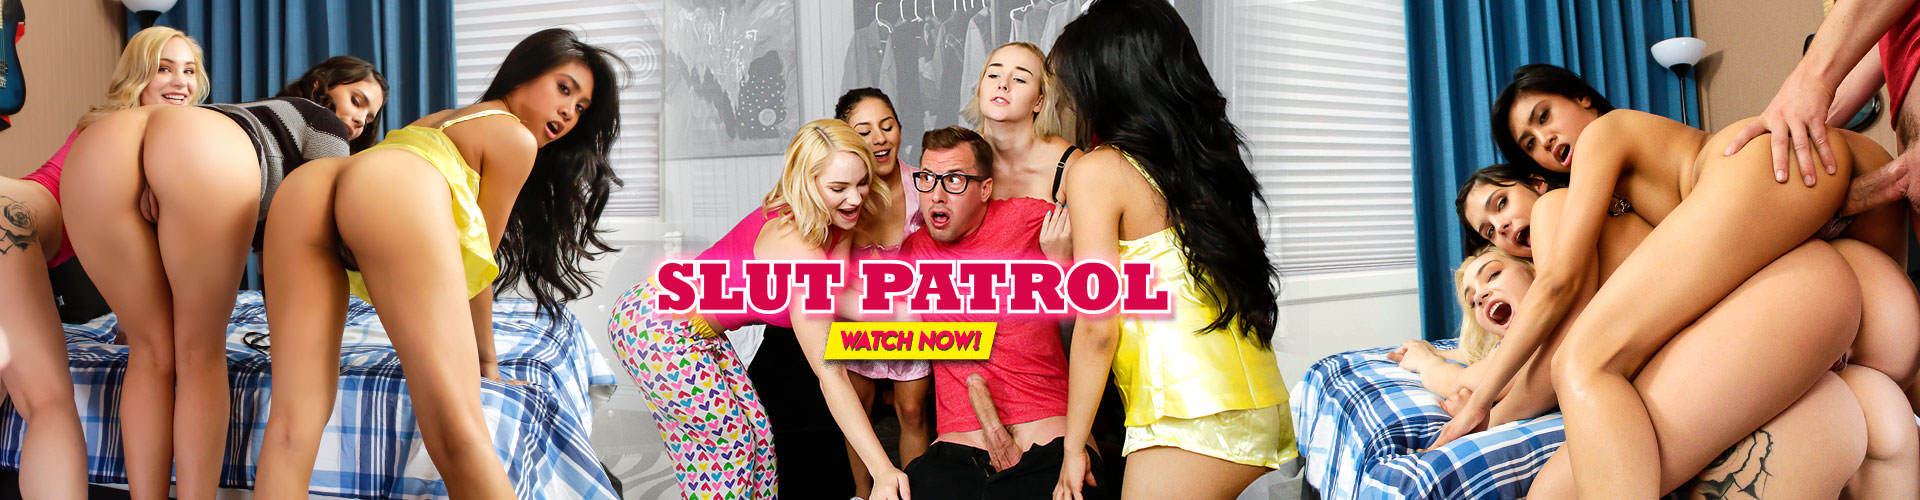 members.slutpatrol.com